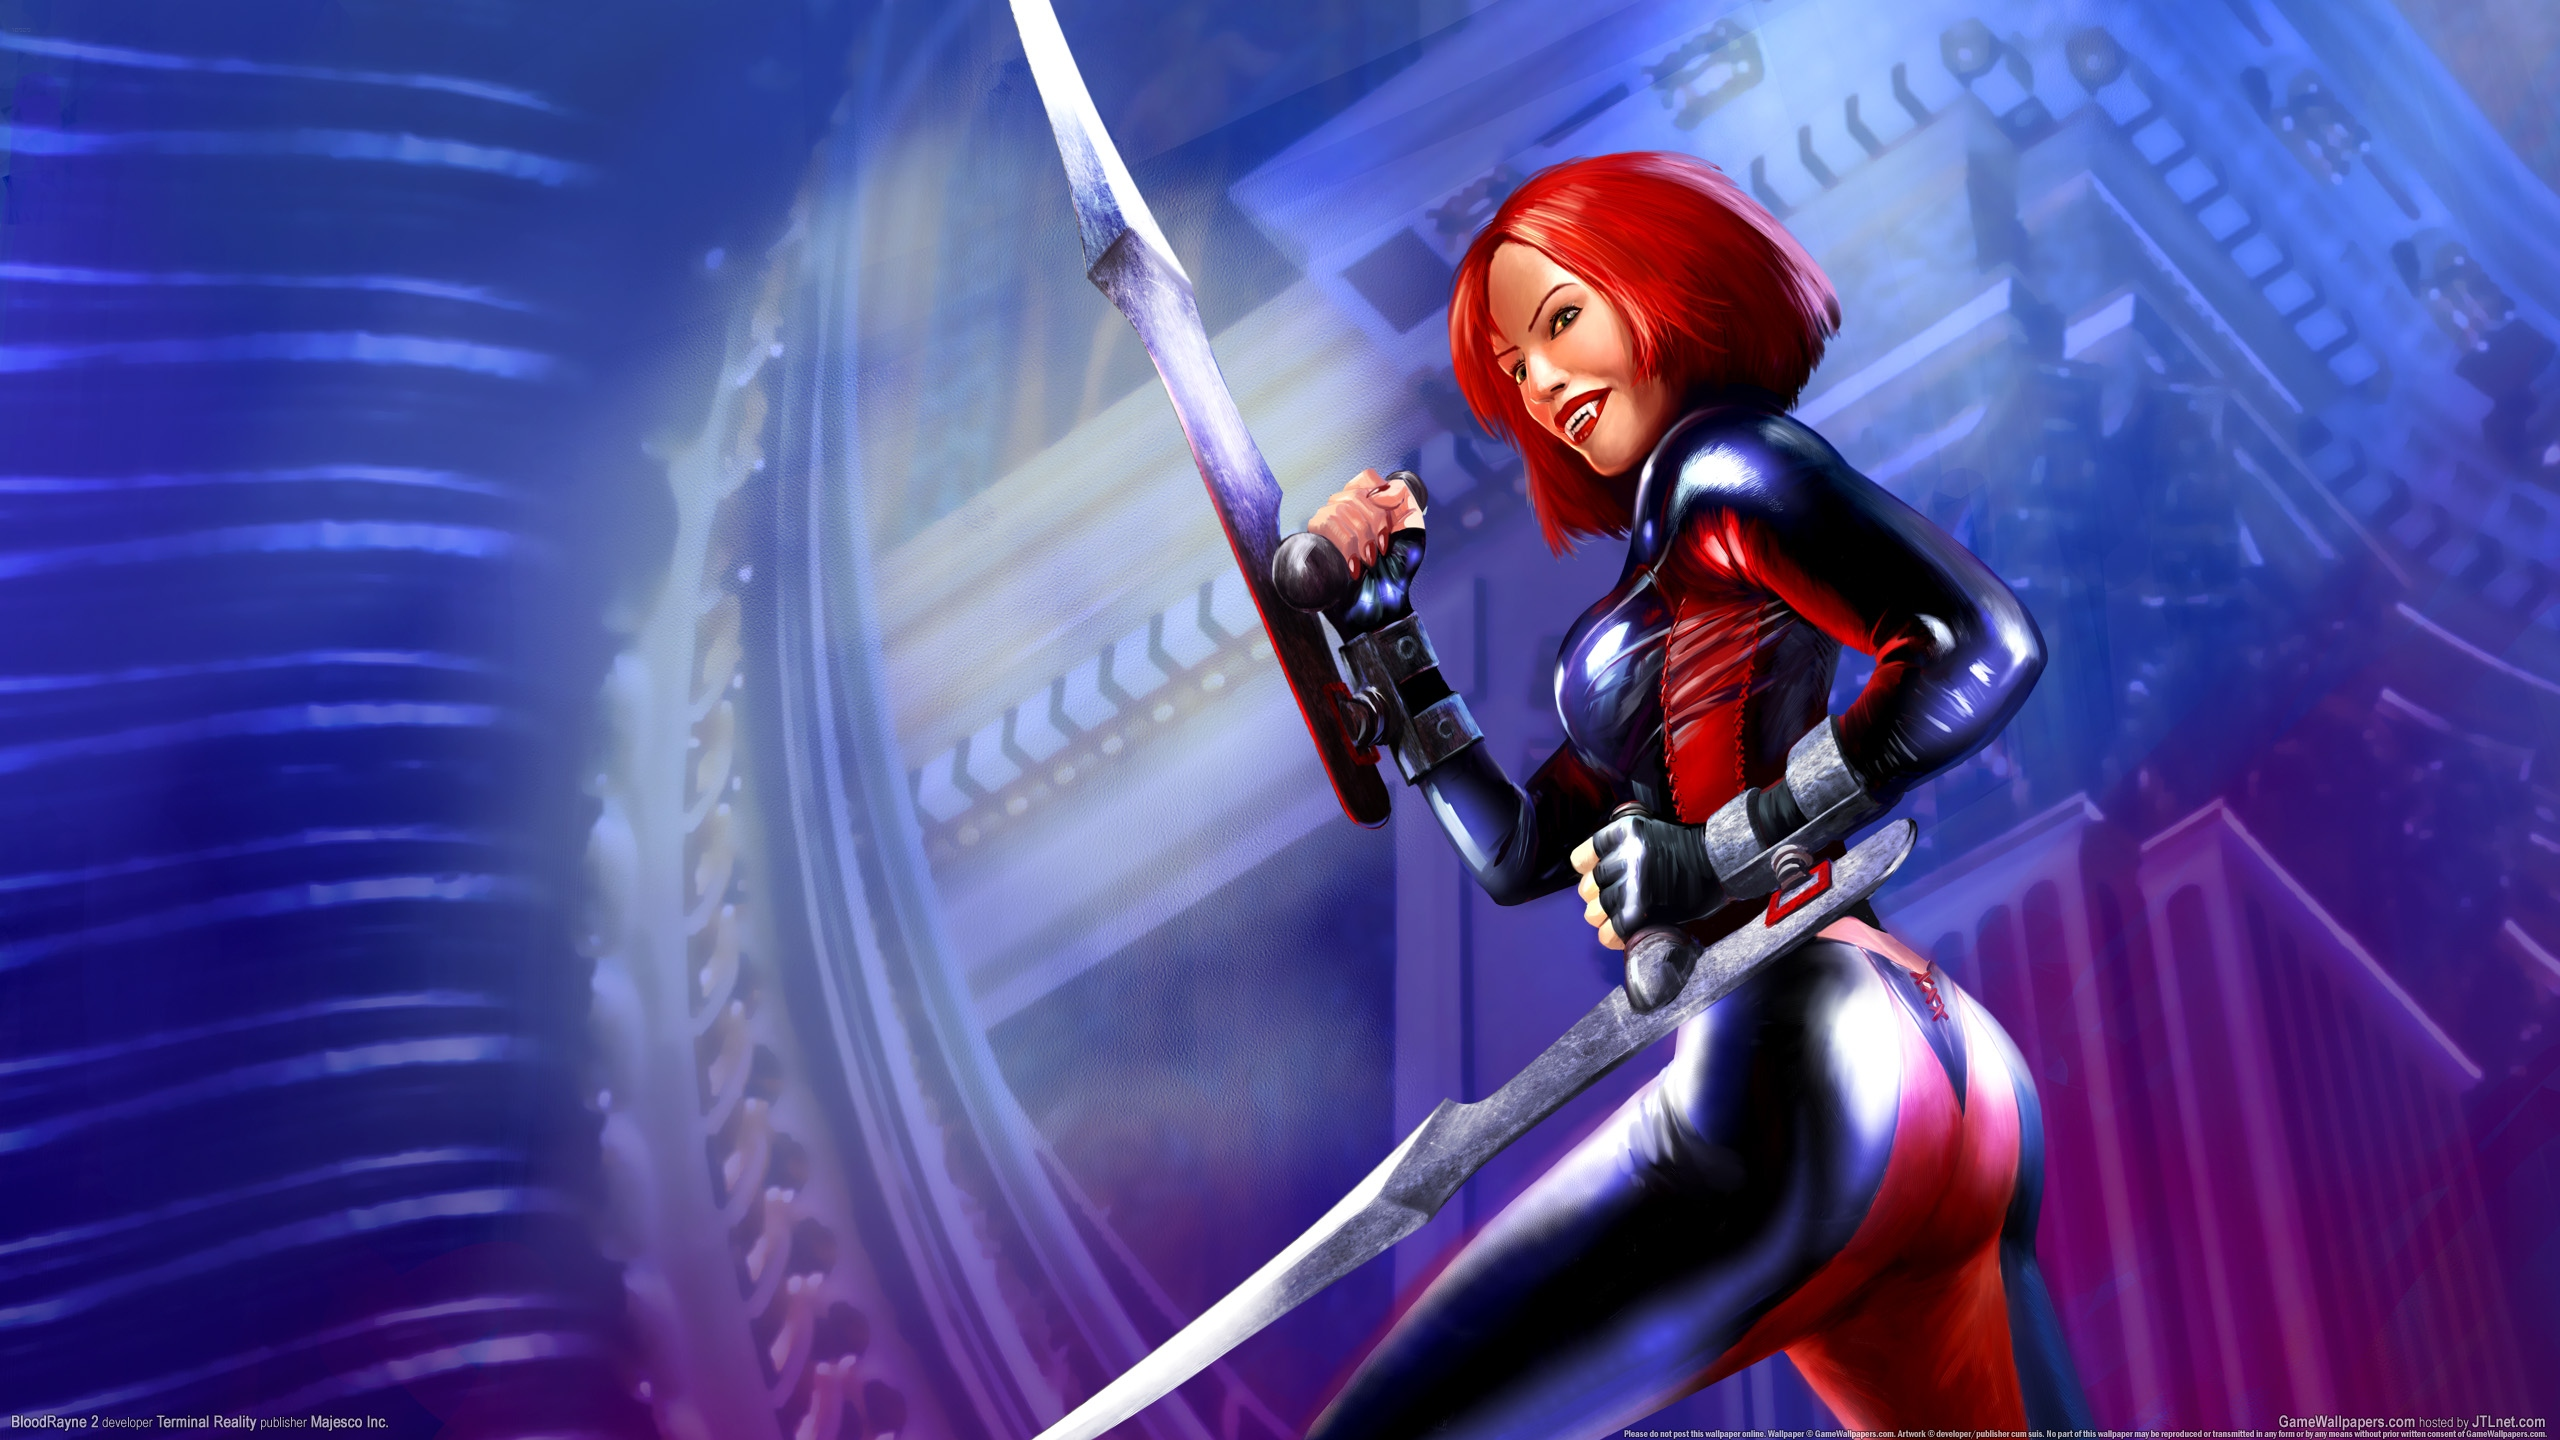 BloodRayne 2 2560x1440 wallpaper or background 08